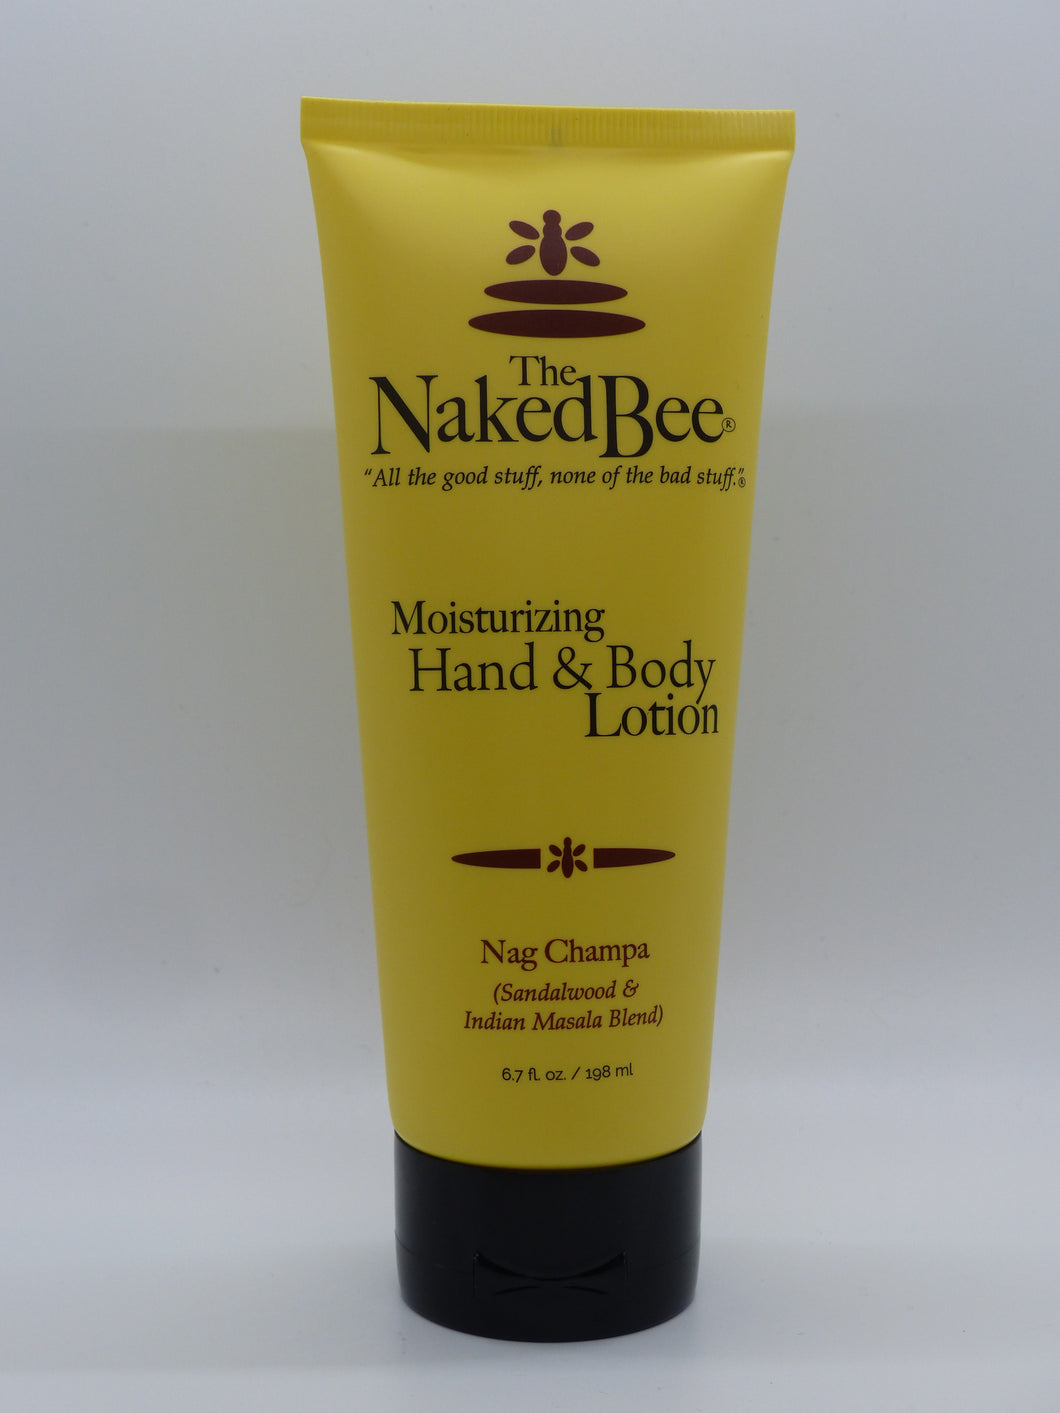 The Naked Bee Lotion - Nag Champa